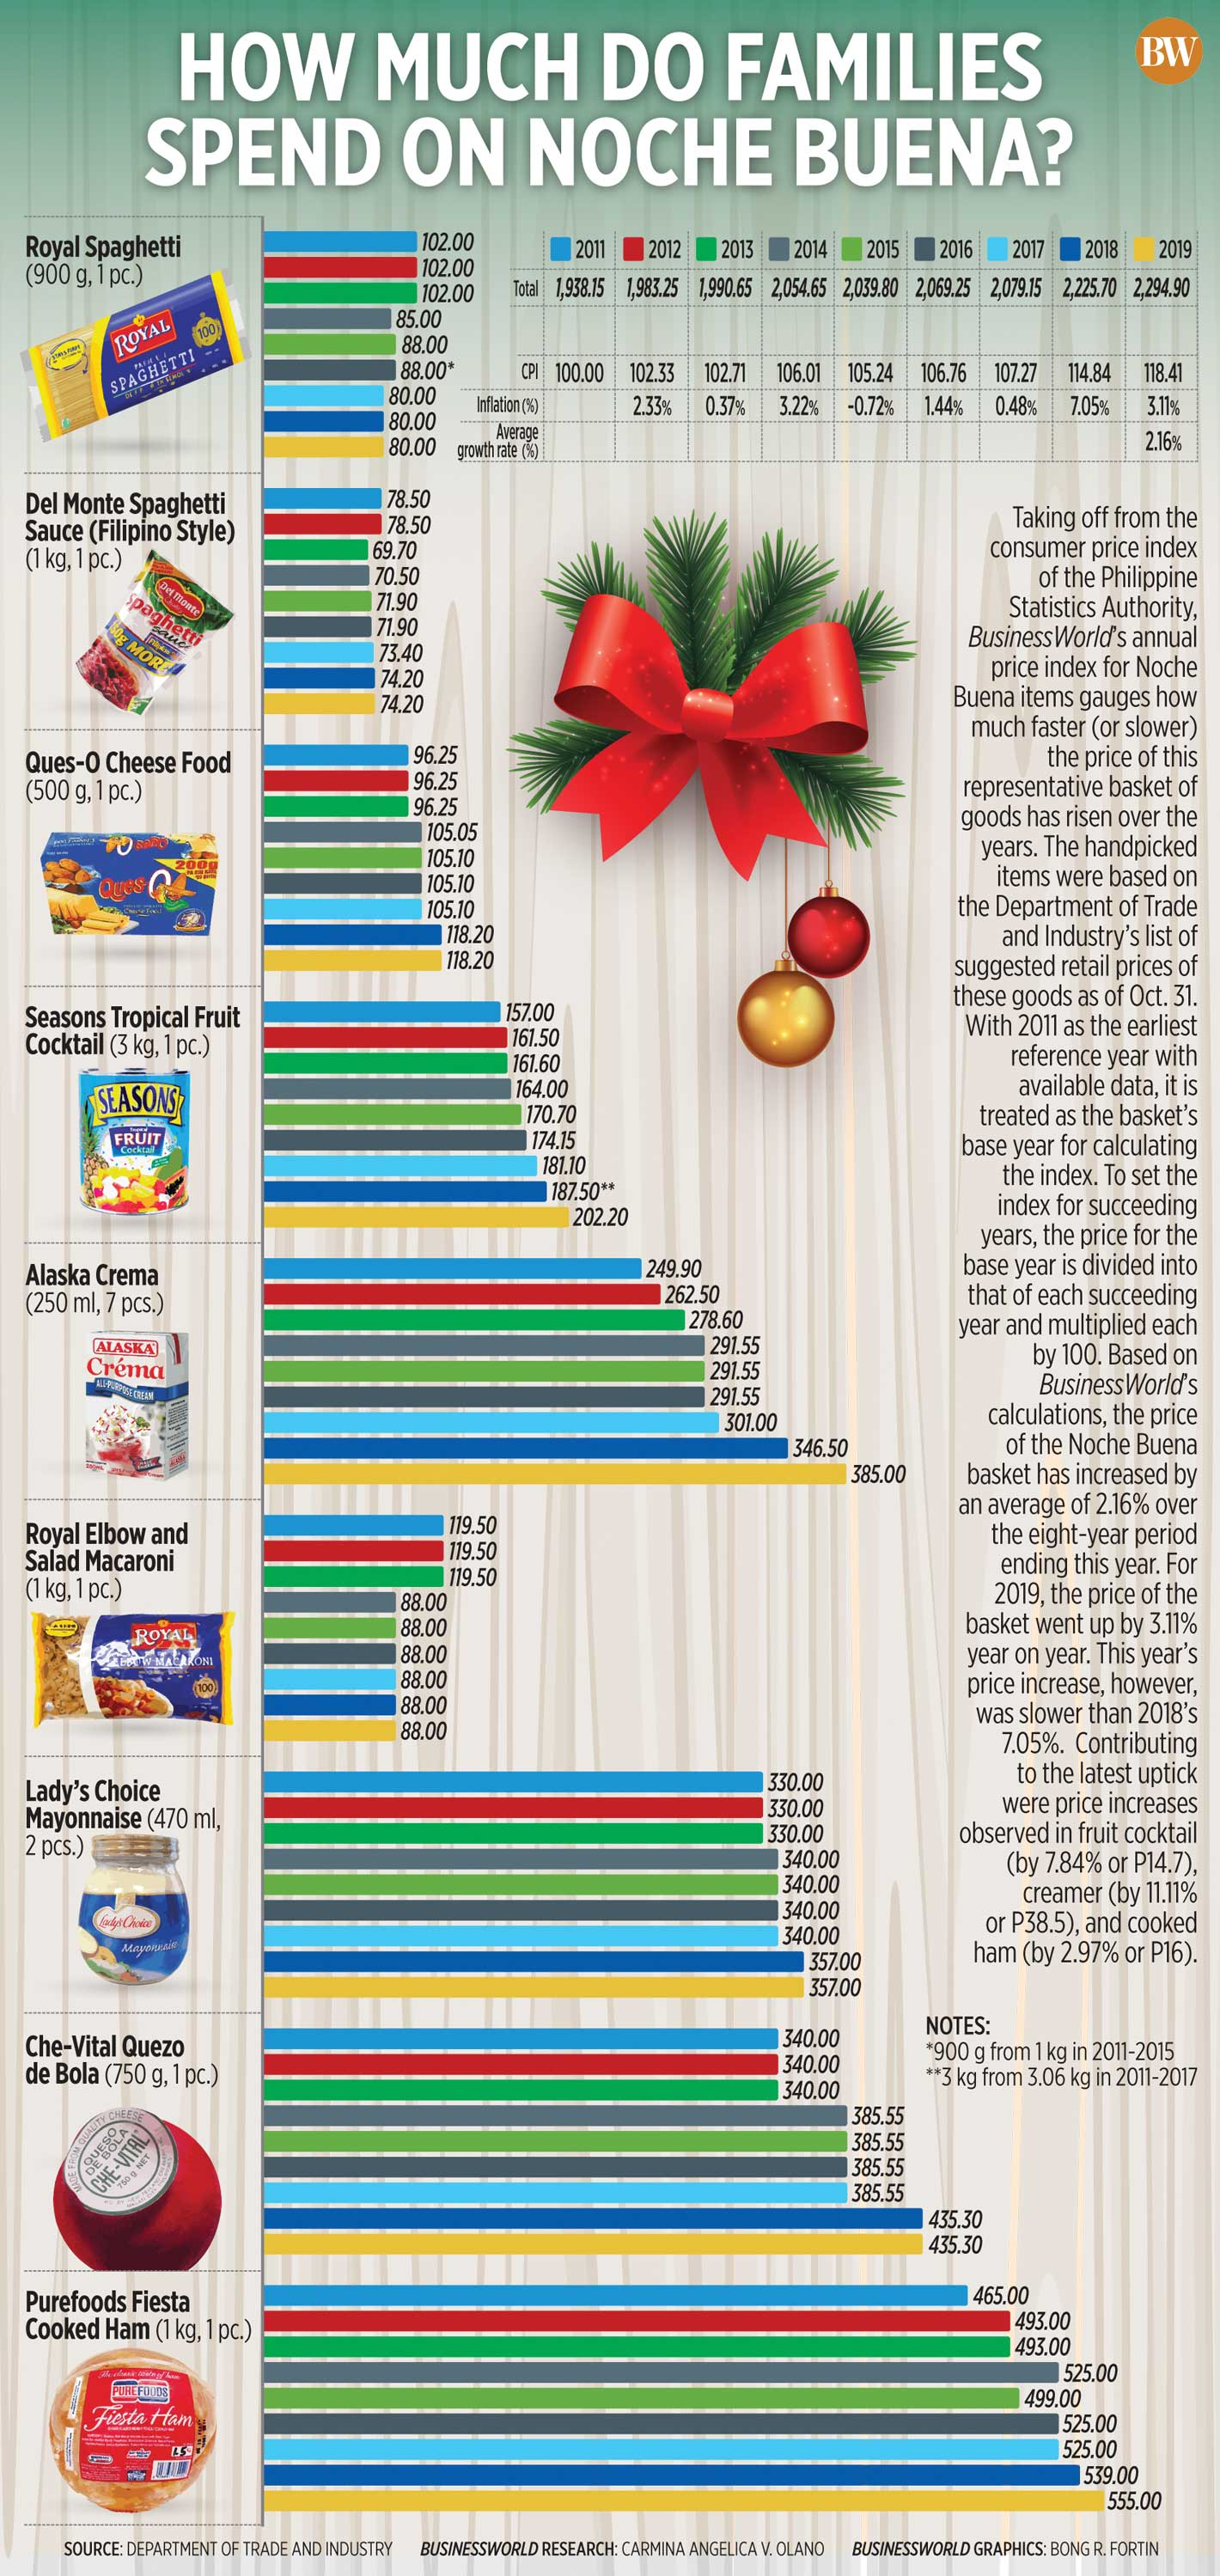 How much do families spend on Noche Buena?